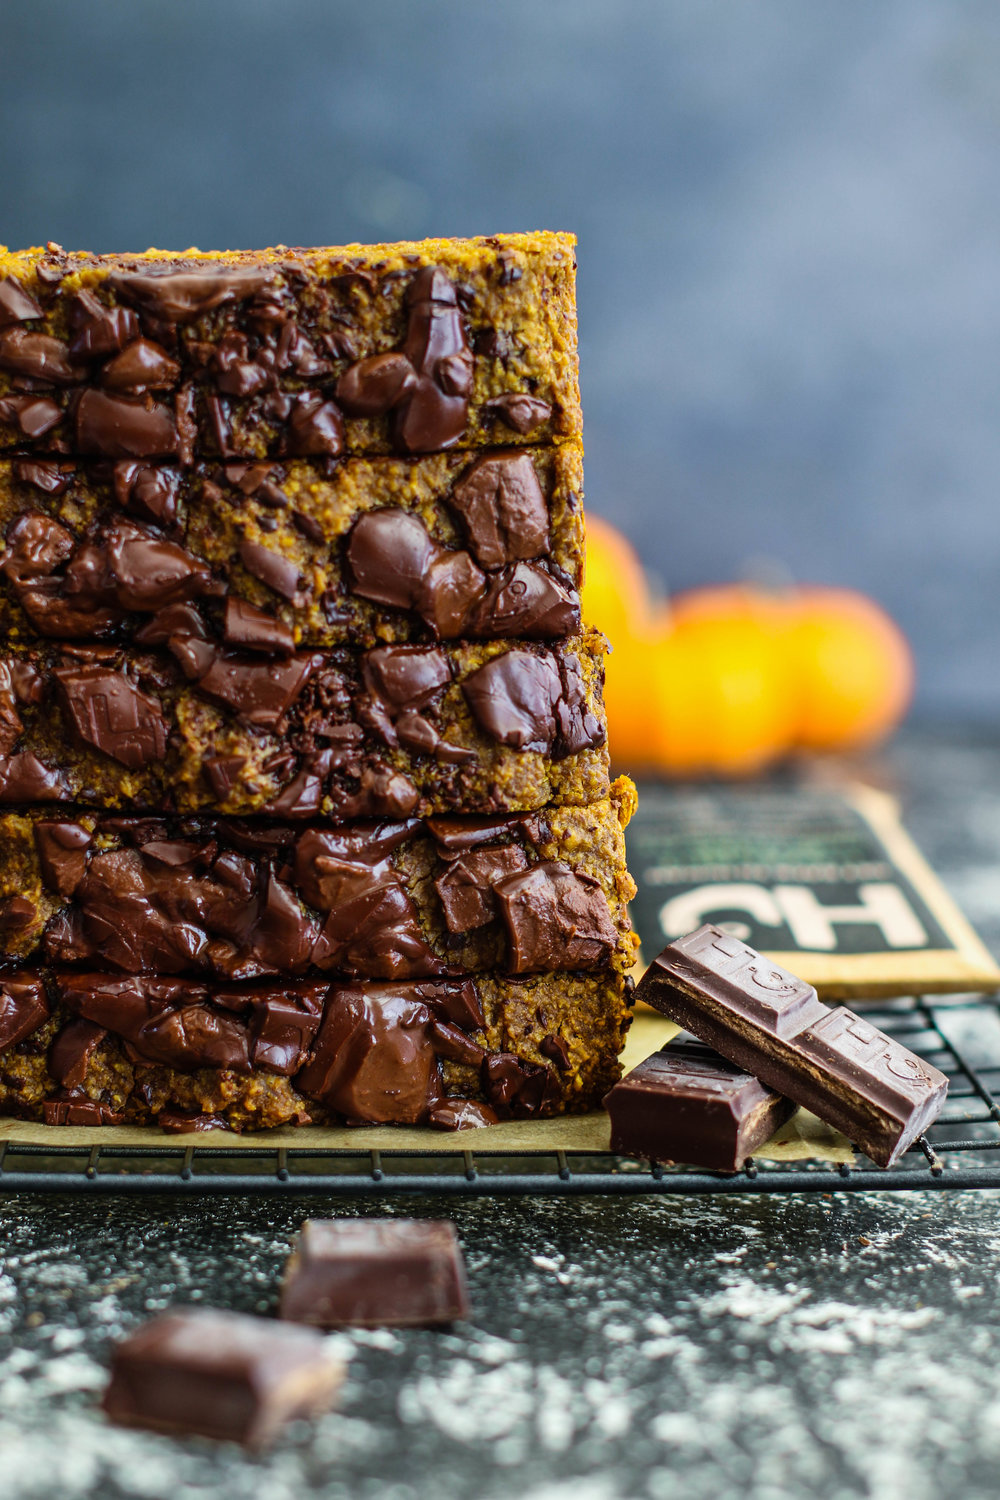 Hu-Chocolate-Vegan-Gluten-Free-Pumpkin-Chocolate-Chunk-Bread-1.jpg